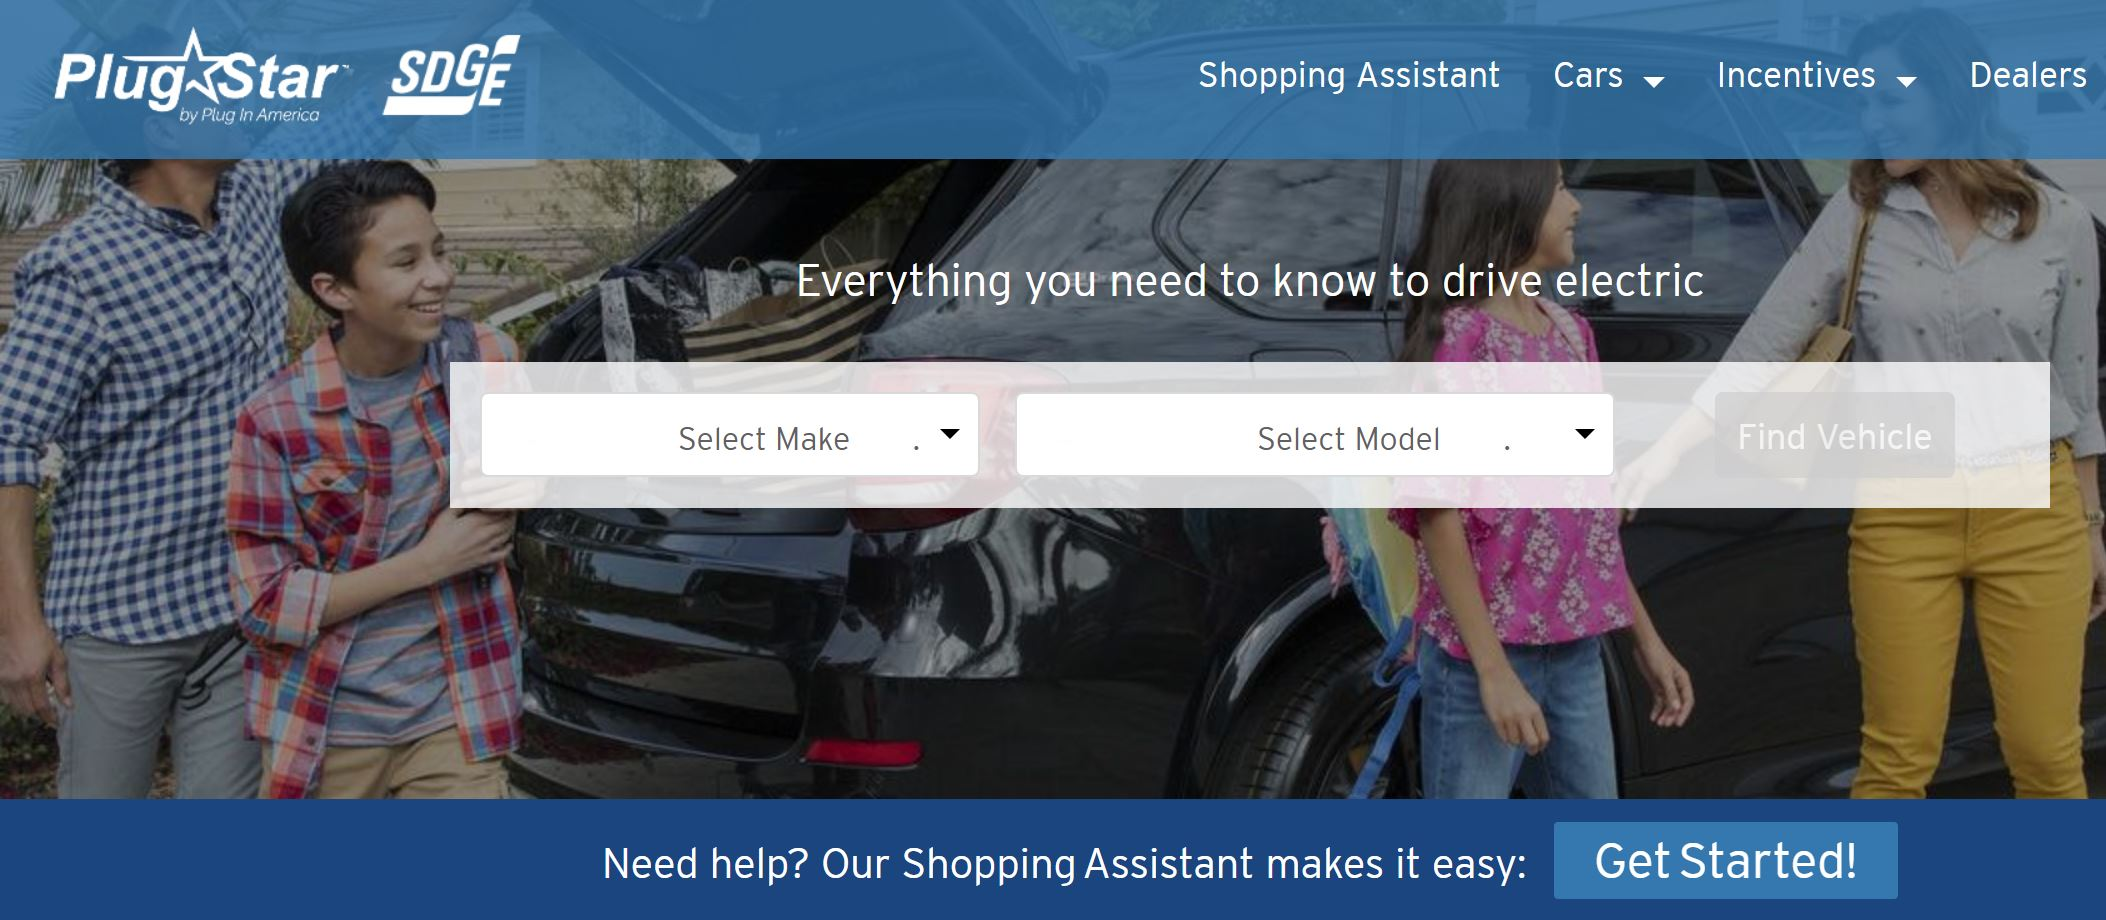 A Screenshot of the plugstar.com/sdge EV shopping web portal